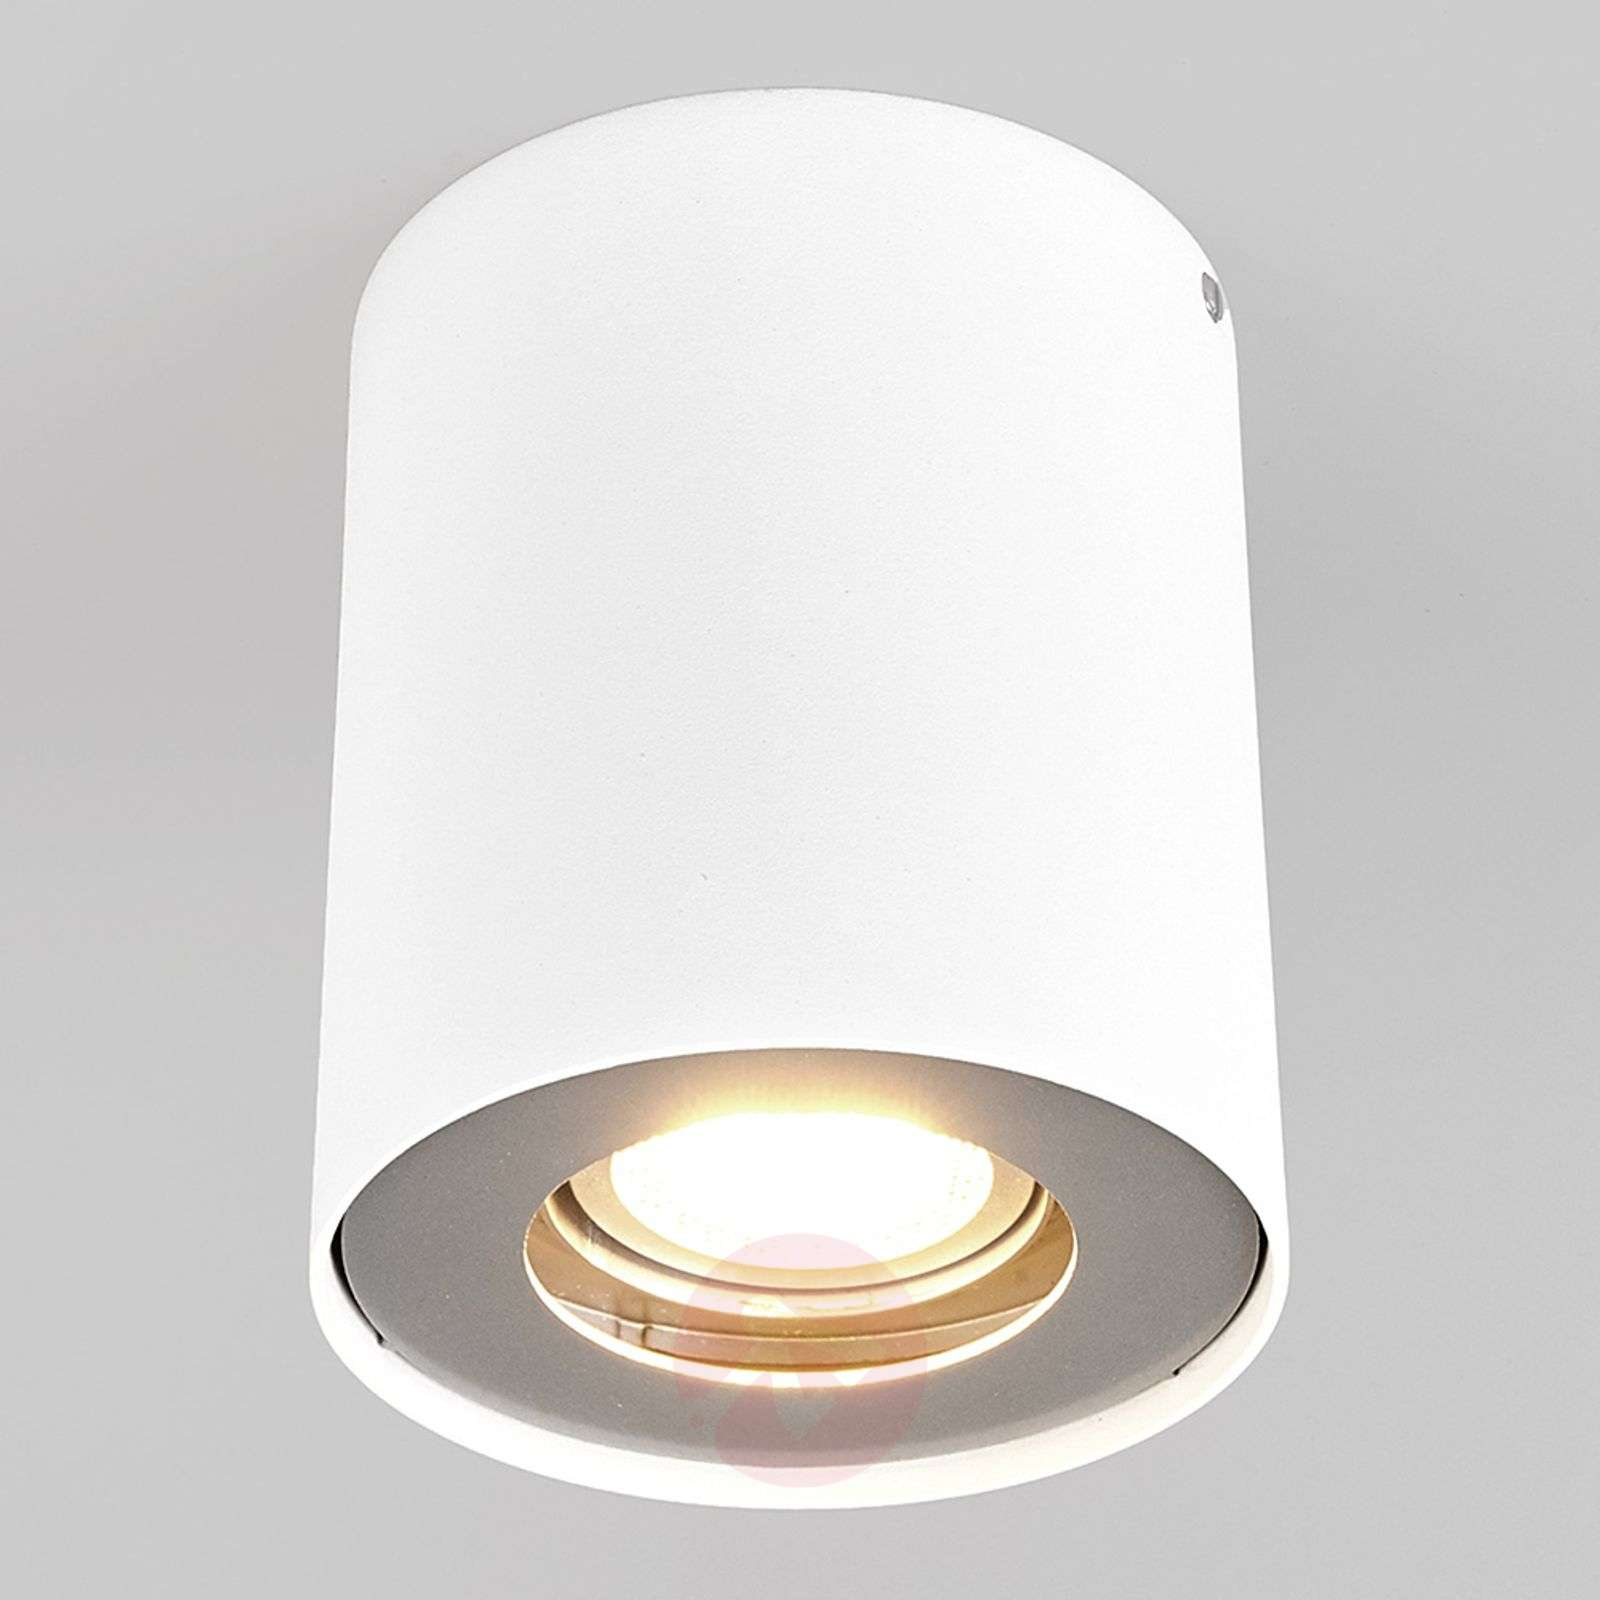 Downlight LED Giliano à 1 lampe, rond, blanc-9975001-01